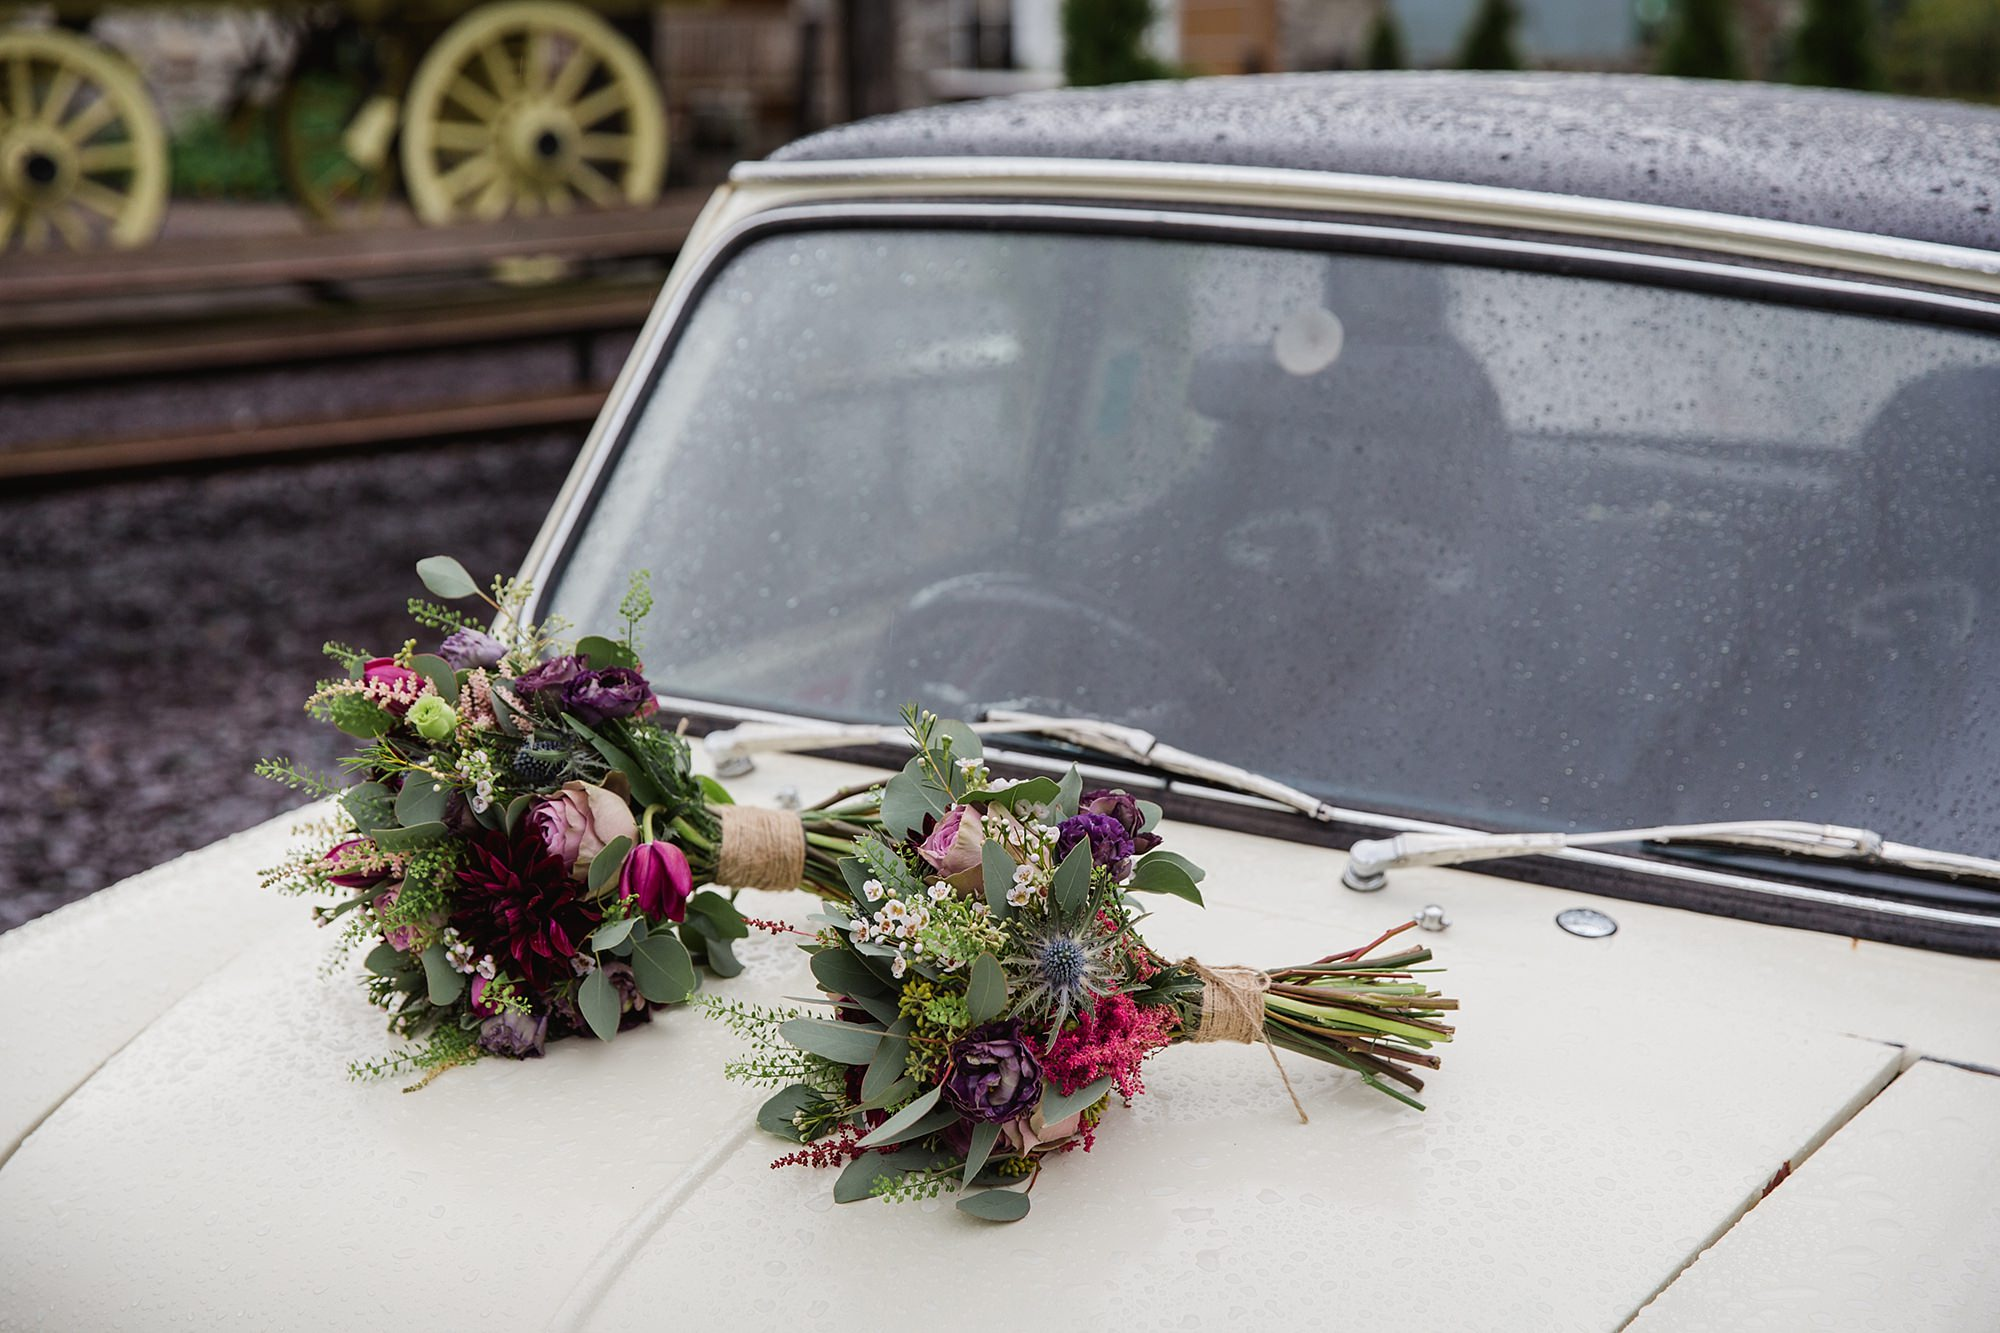 A fun wedding picture of bride's bouquet on mini cooper